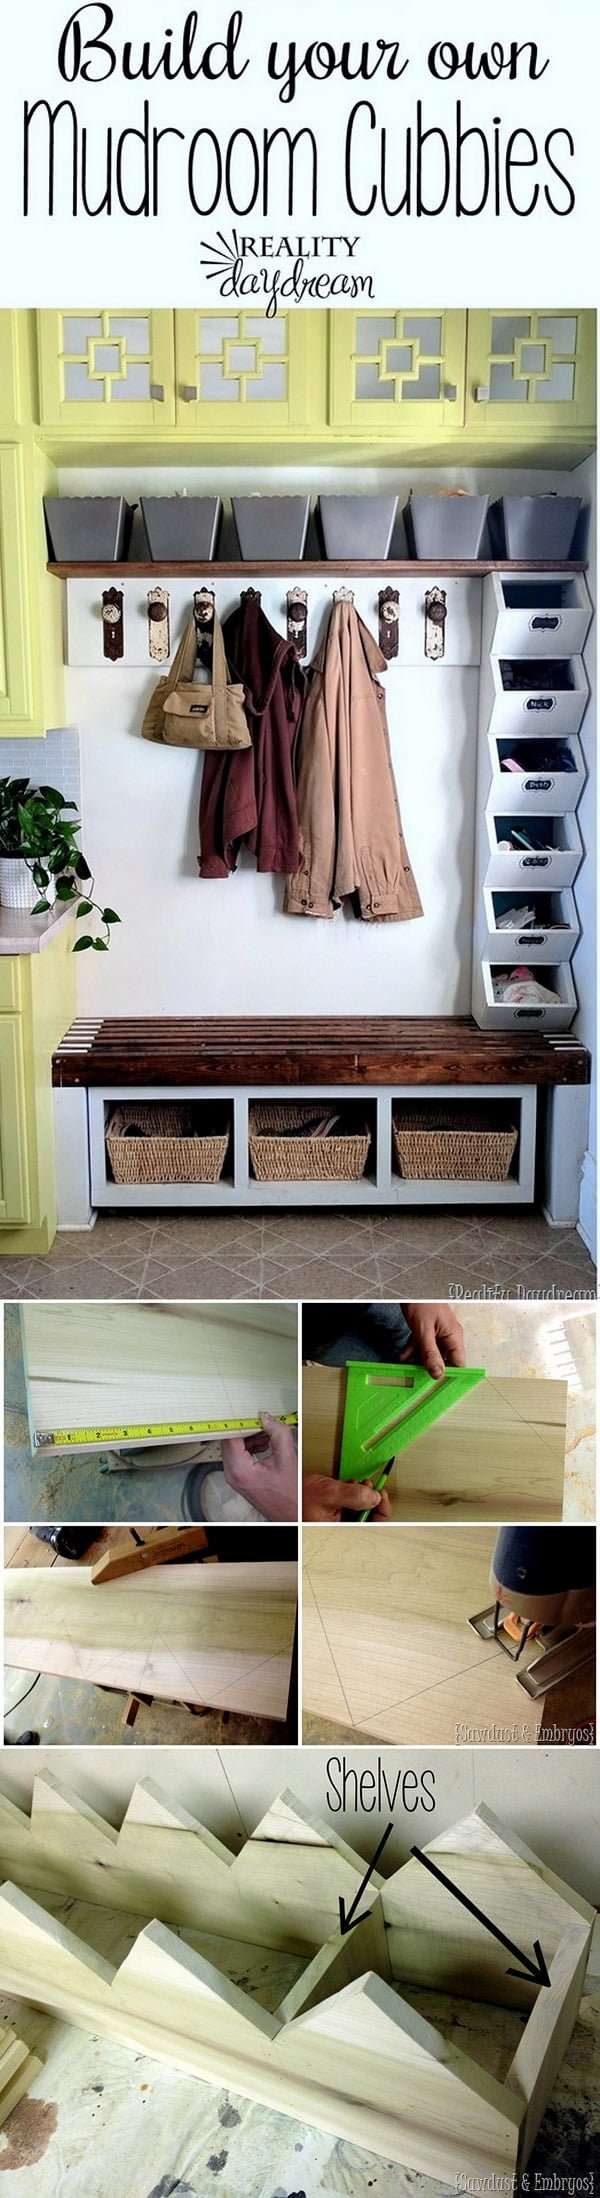 Check out this easy idea on how to build #DIY mudroom cubbies #homedecor on a #budget #wood #project